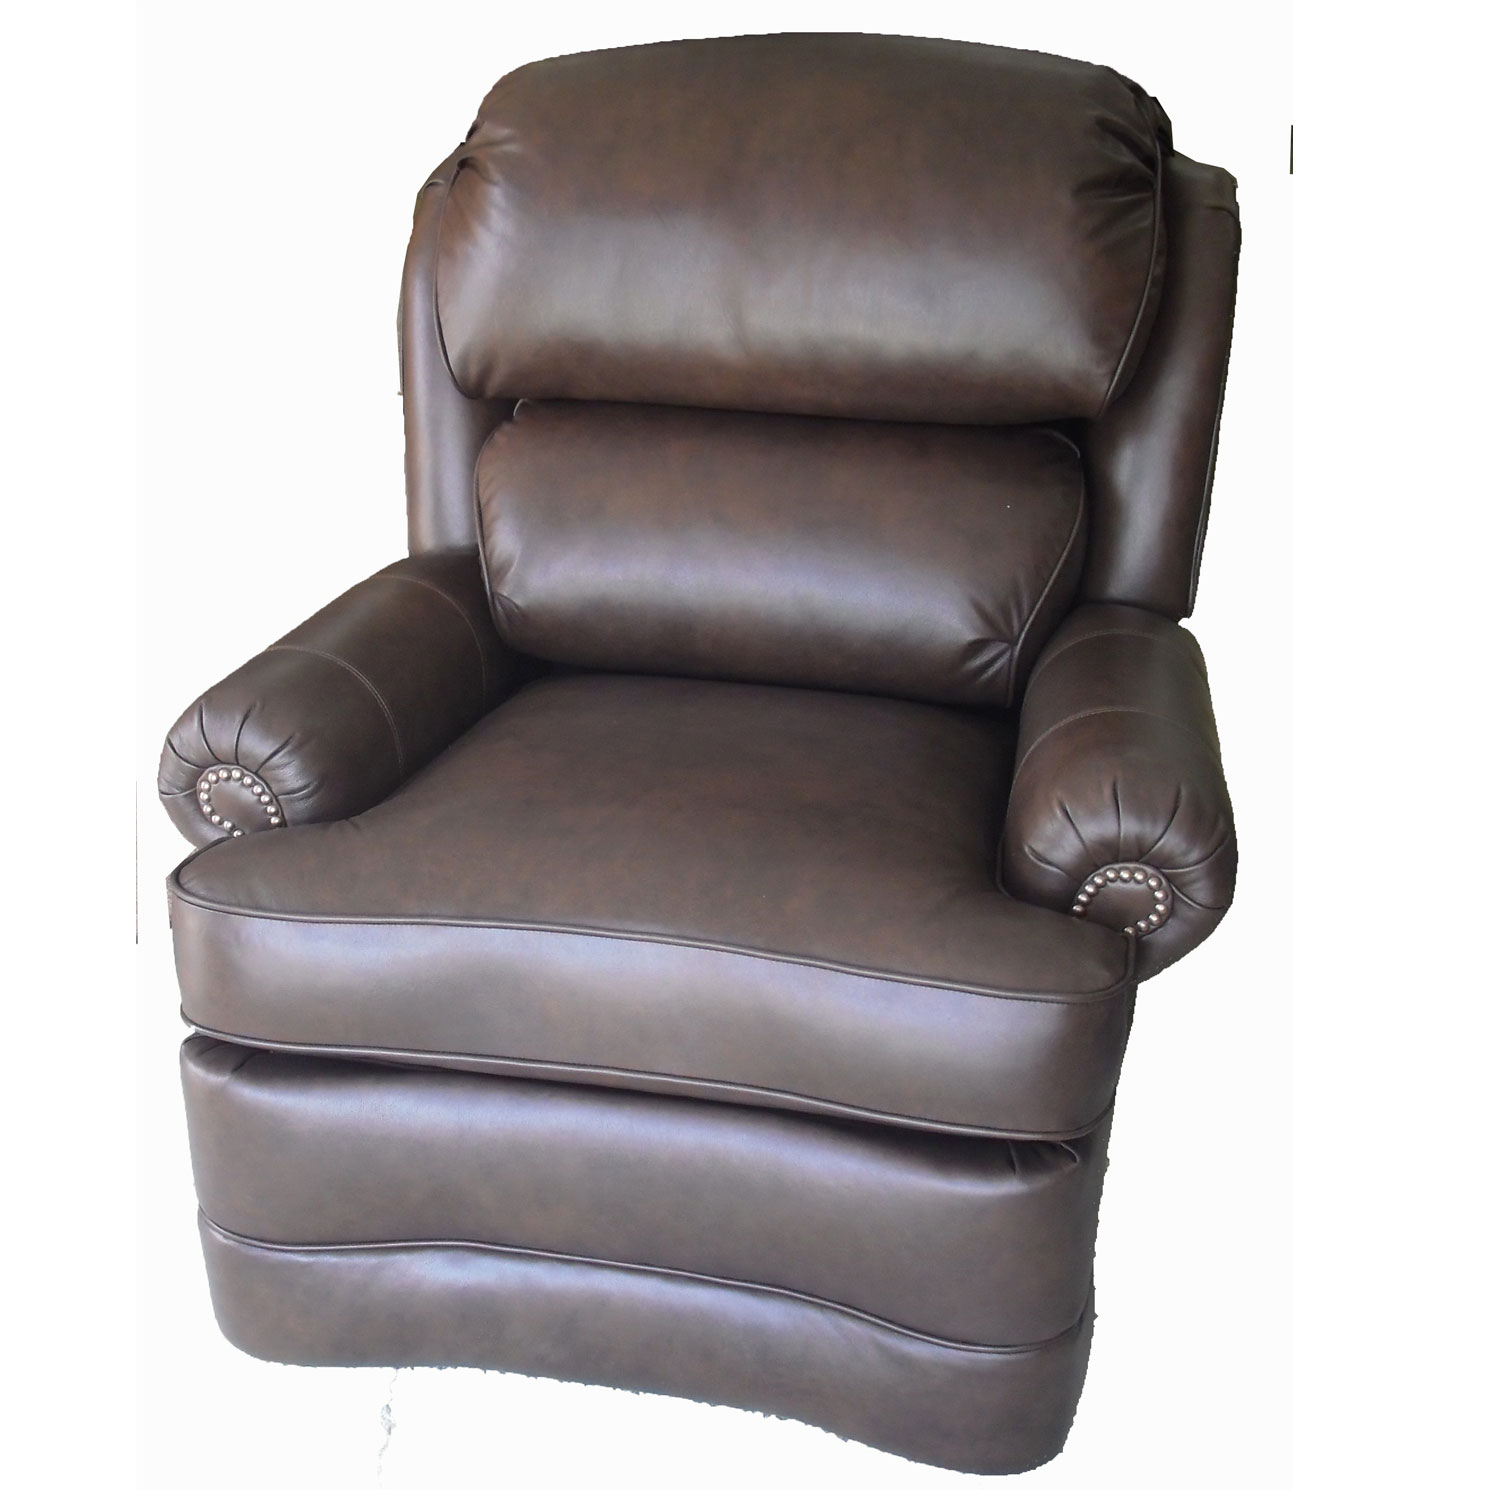 www recliner chairs swing chair cheap smith brothers 714 37 leather hope home